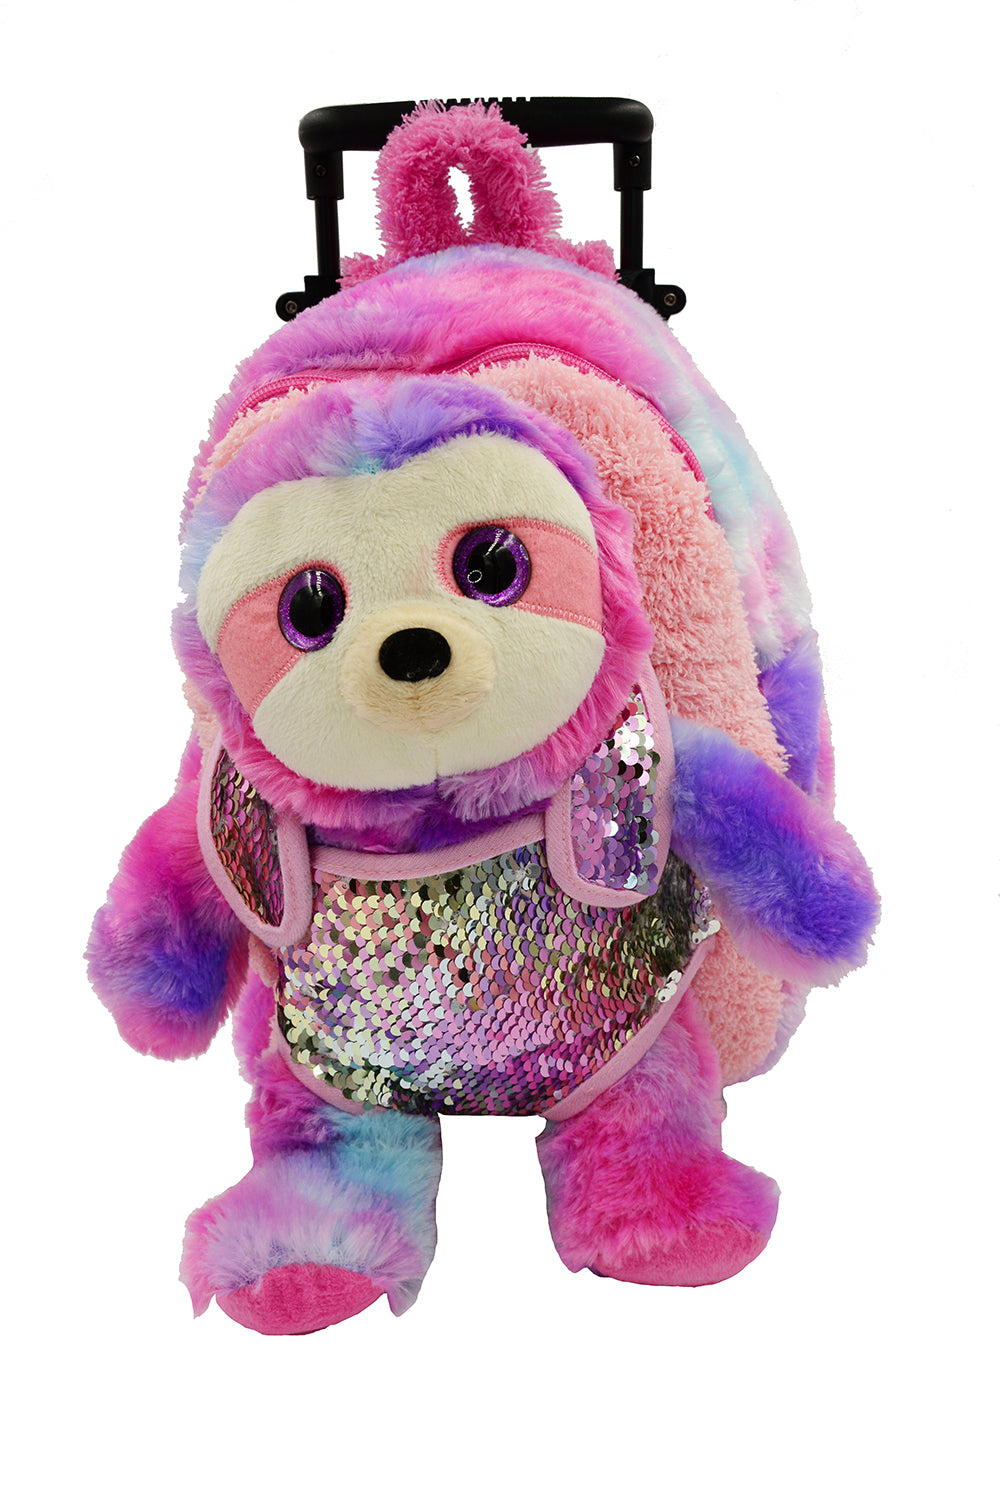 Sequin Sloth PAL Arounds Backpack